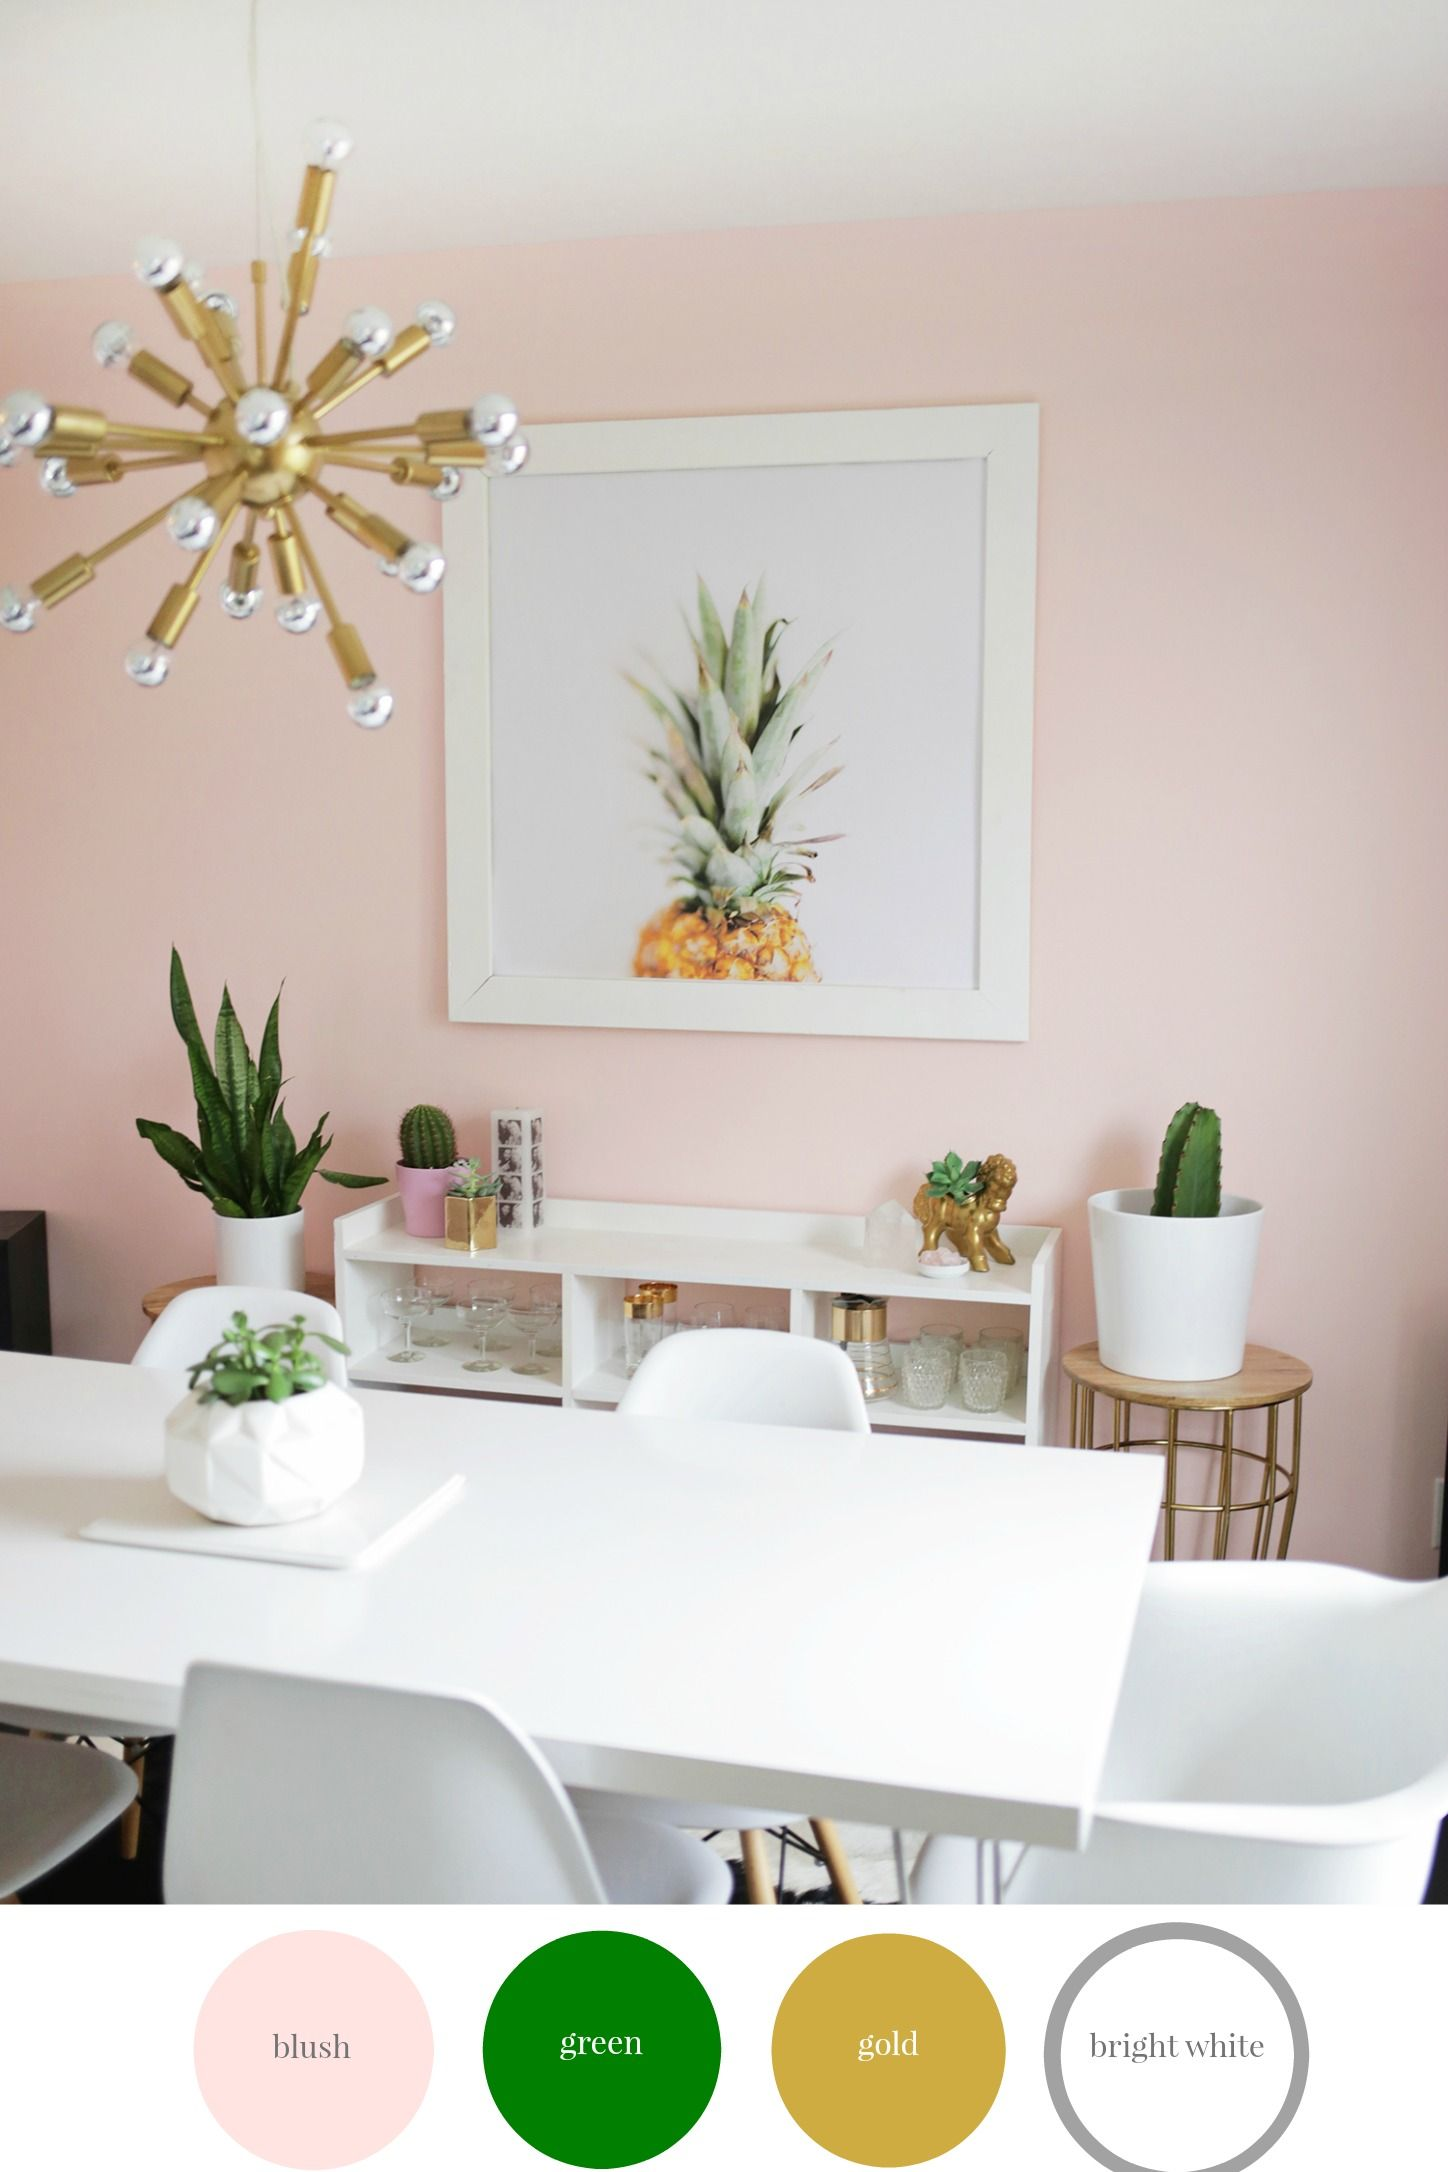 Choosing paint colors is a lot more than just picking a shade you like each room requires different considerations when picking an overall color scheme